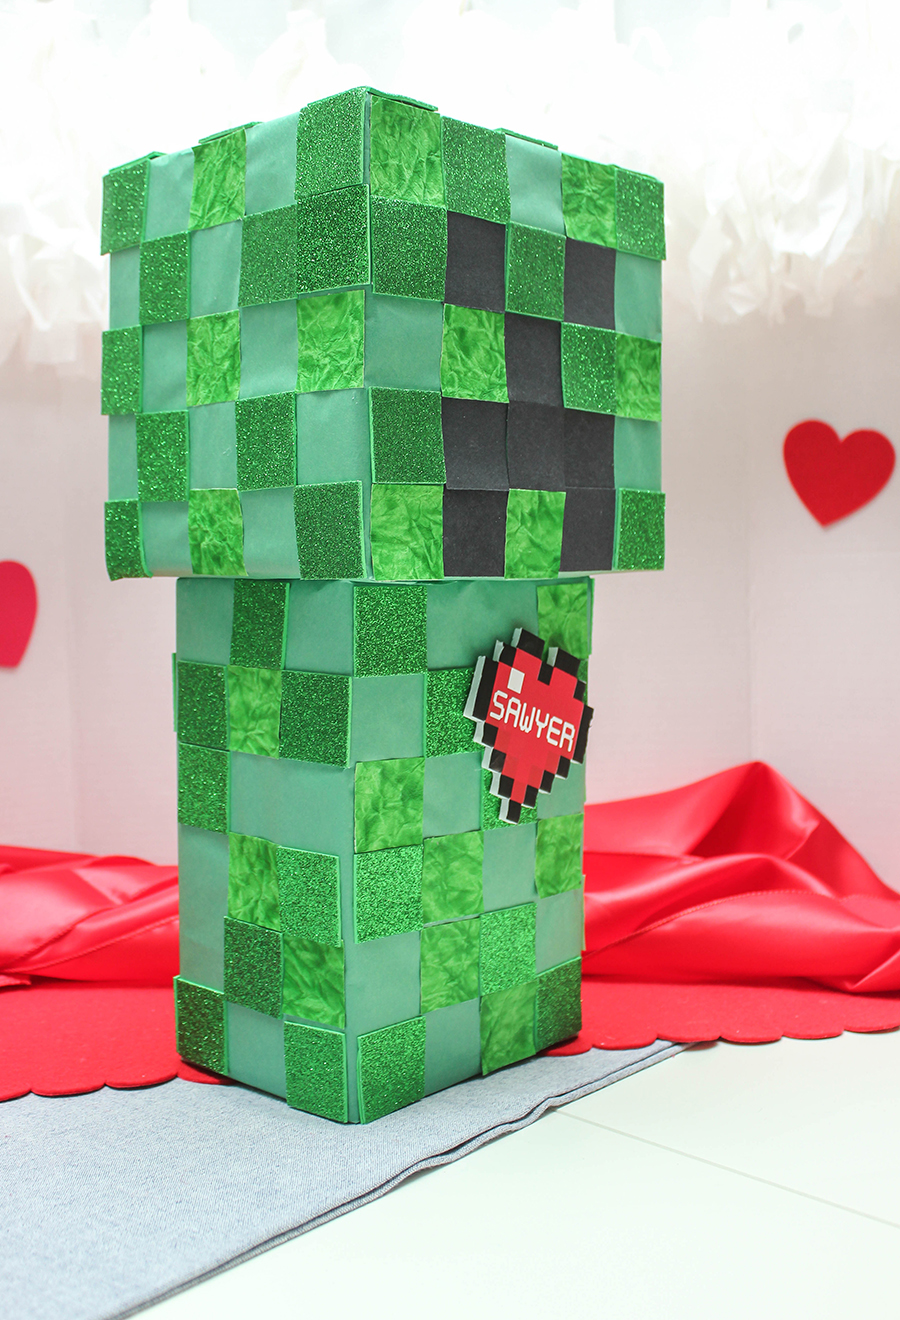 Minecraft Valentine Box, Minecraft Valentine Box Idea, Creeper, Minecraft, DIY Valentine Box, Valentine craft, Just Add Confetti, Creeper Valentine, Valentine's Day, Creeper box, Minecraft box, Creeper Valentine box, Minecraft Valentine, free printable, heart printable, digital heart, name tag, heart name tag, Minecraft heart